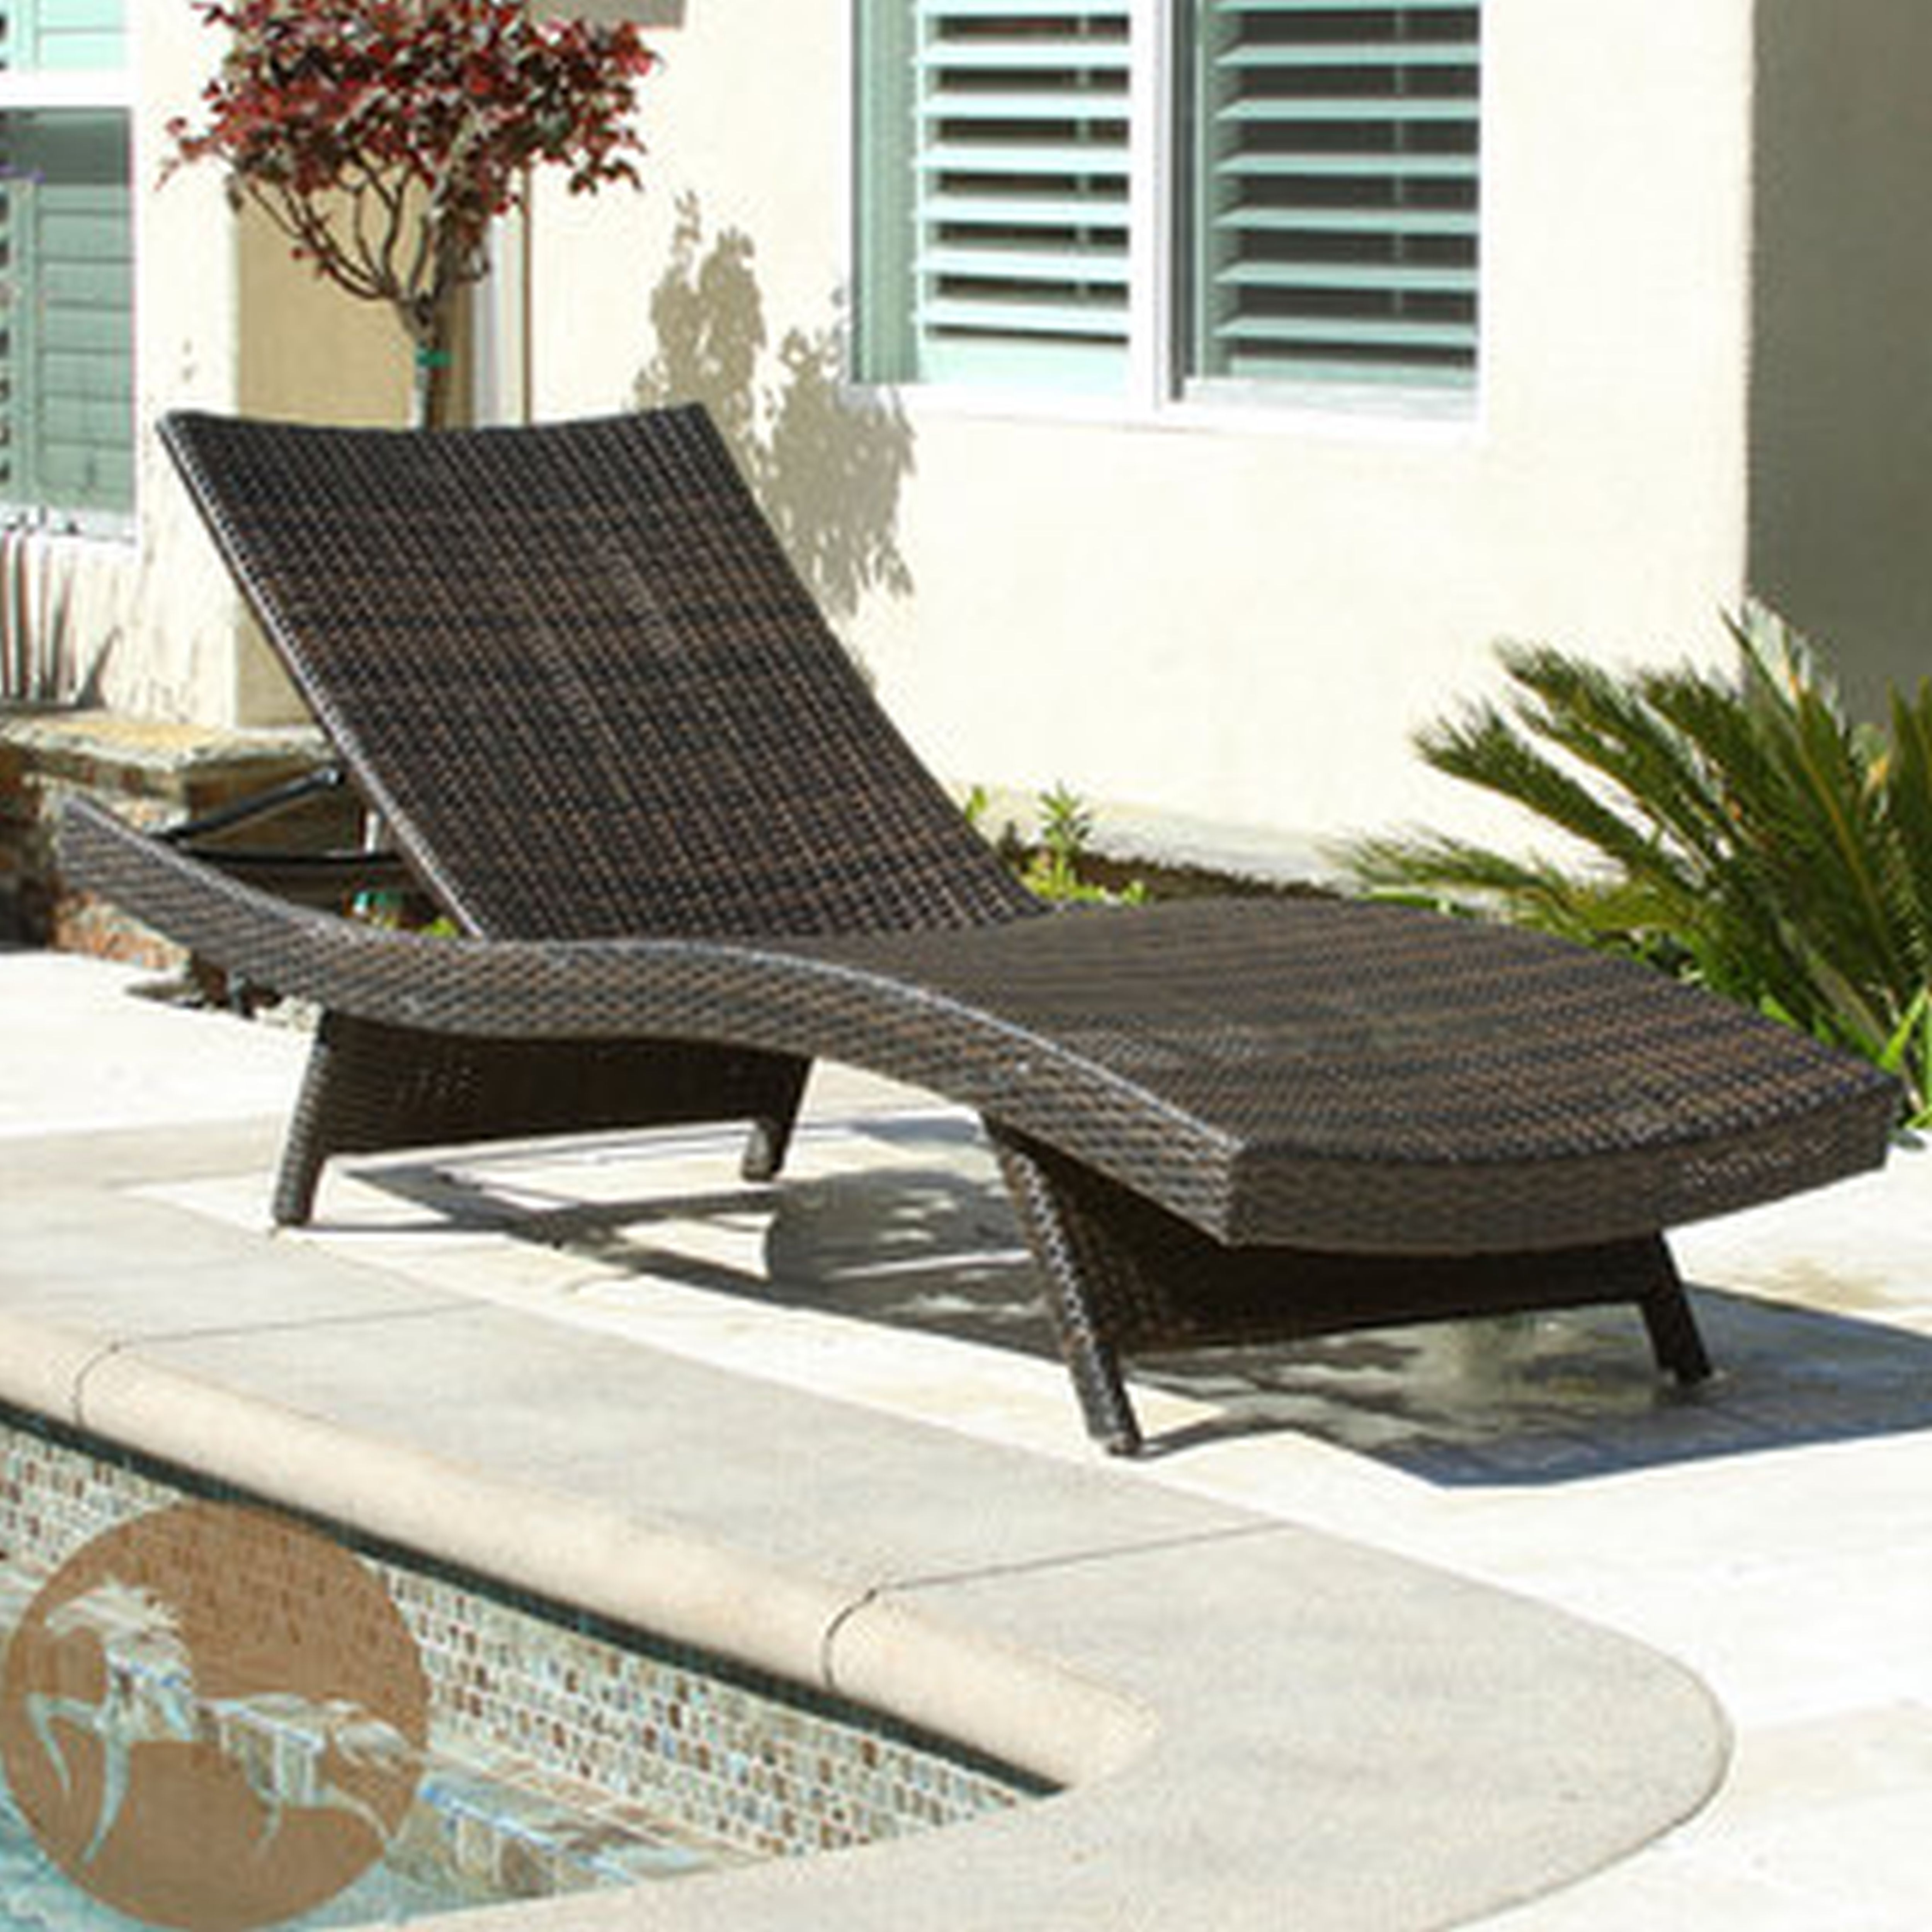 Fashionable Patio Chaise Lounges Within Outdoor : Patio Chaise Lounge Chairs Pool Lounge Chairs Chaise (View 2 of 15)